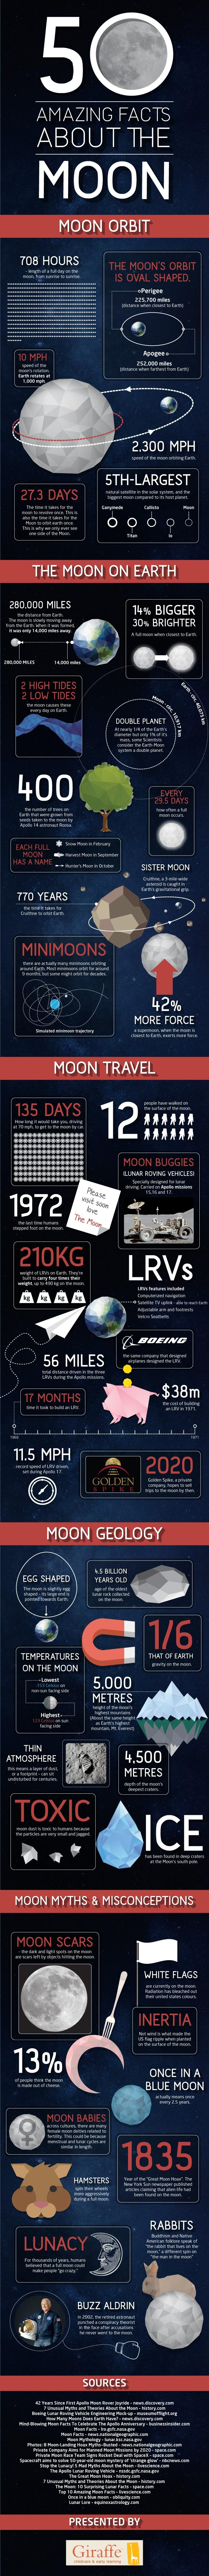 50-facts-about-the-moon-infographic